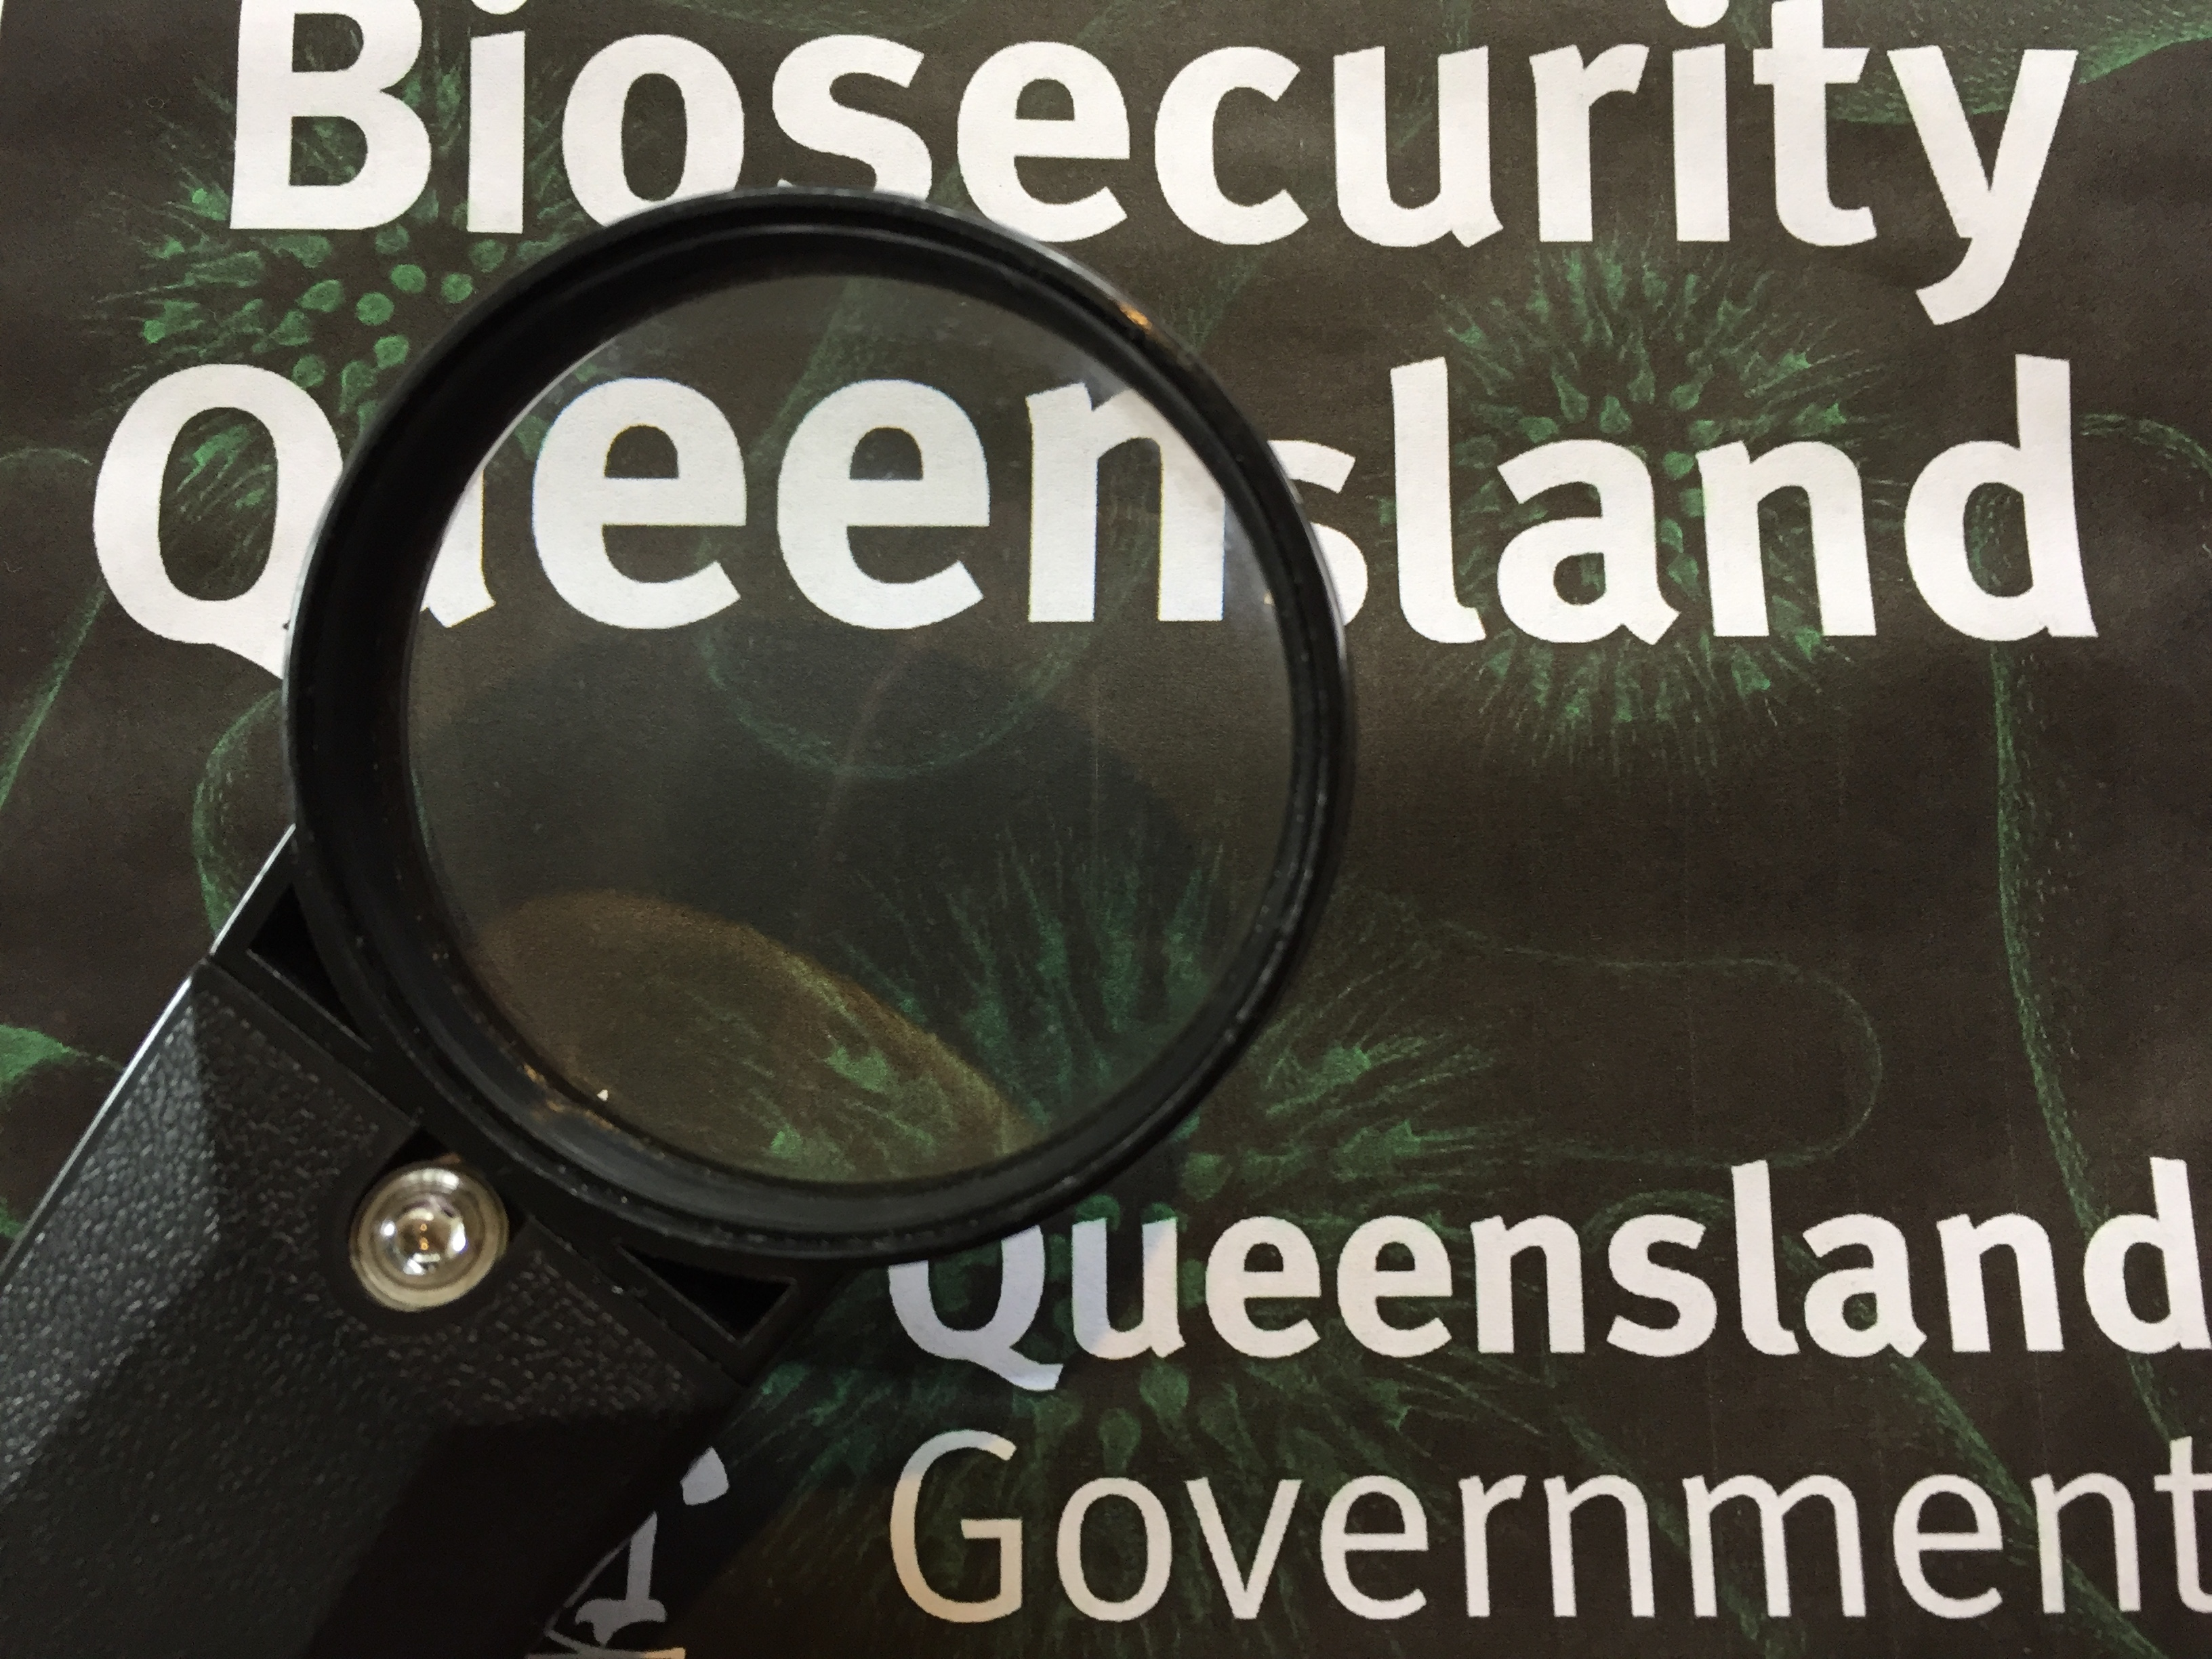 Secrets and lies. Time to open up Biosecurity Queensland's fire ant program to public scrutiny